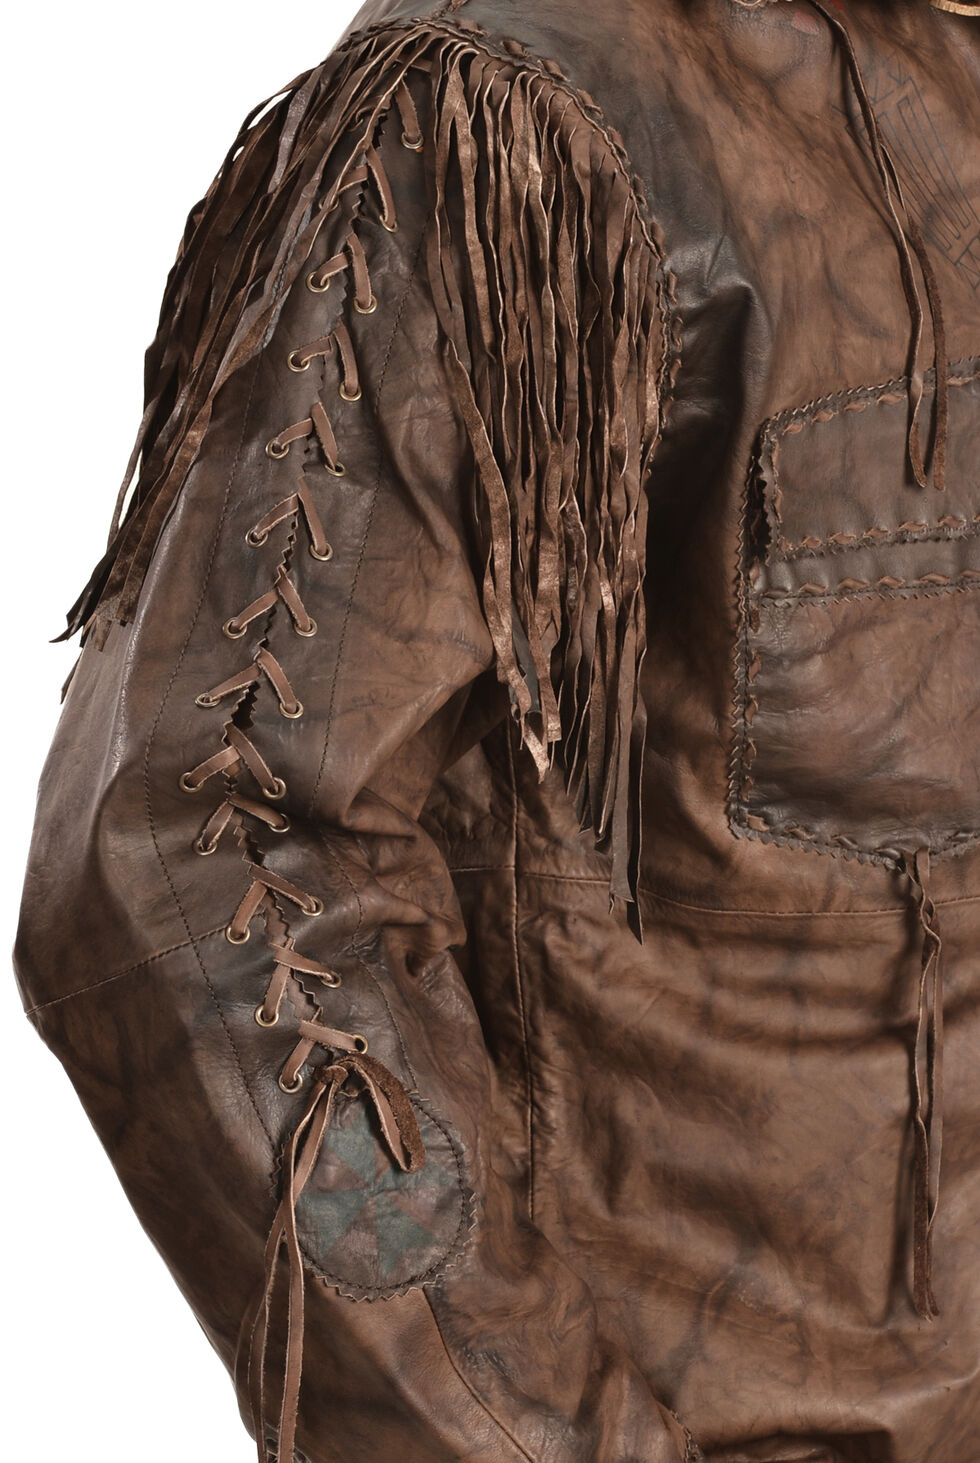 Kobler Leather Men's Chirikahua Leather Shirt, Brown, hi-res